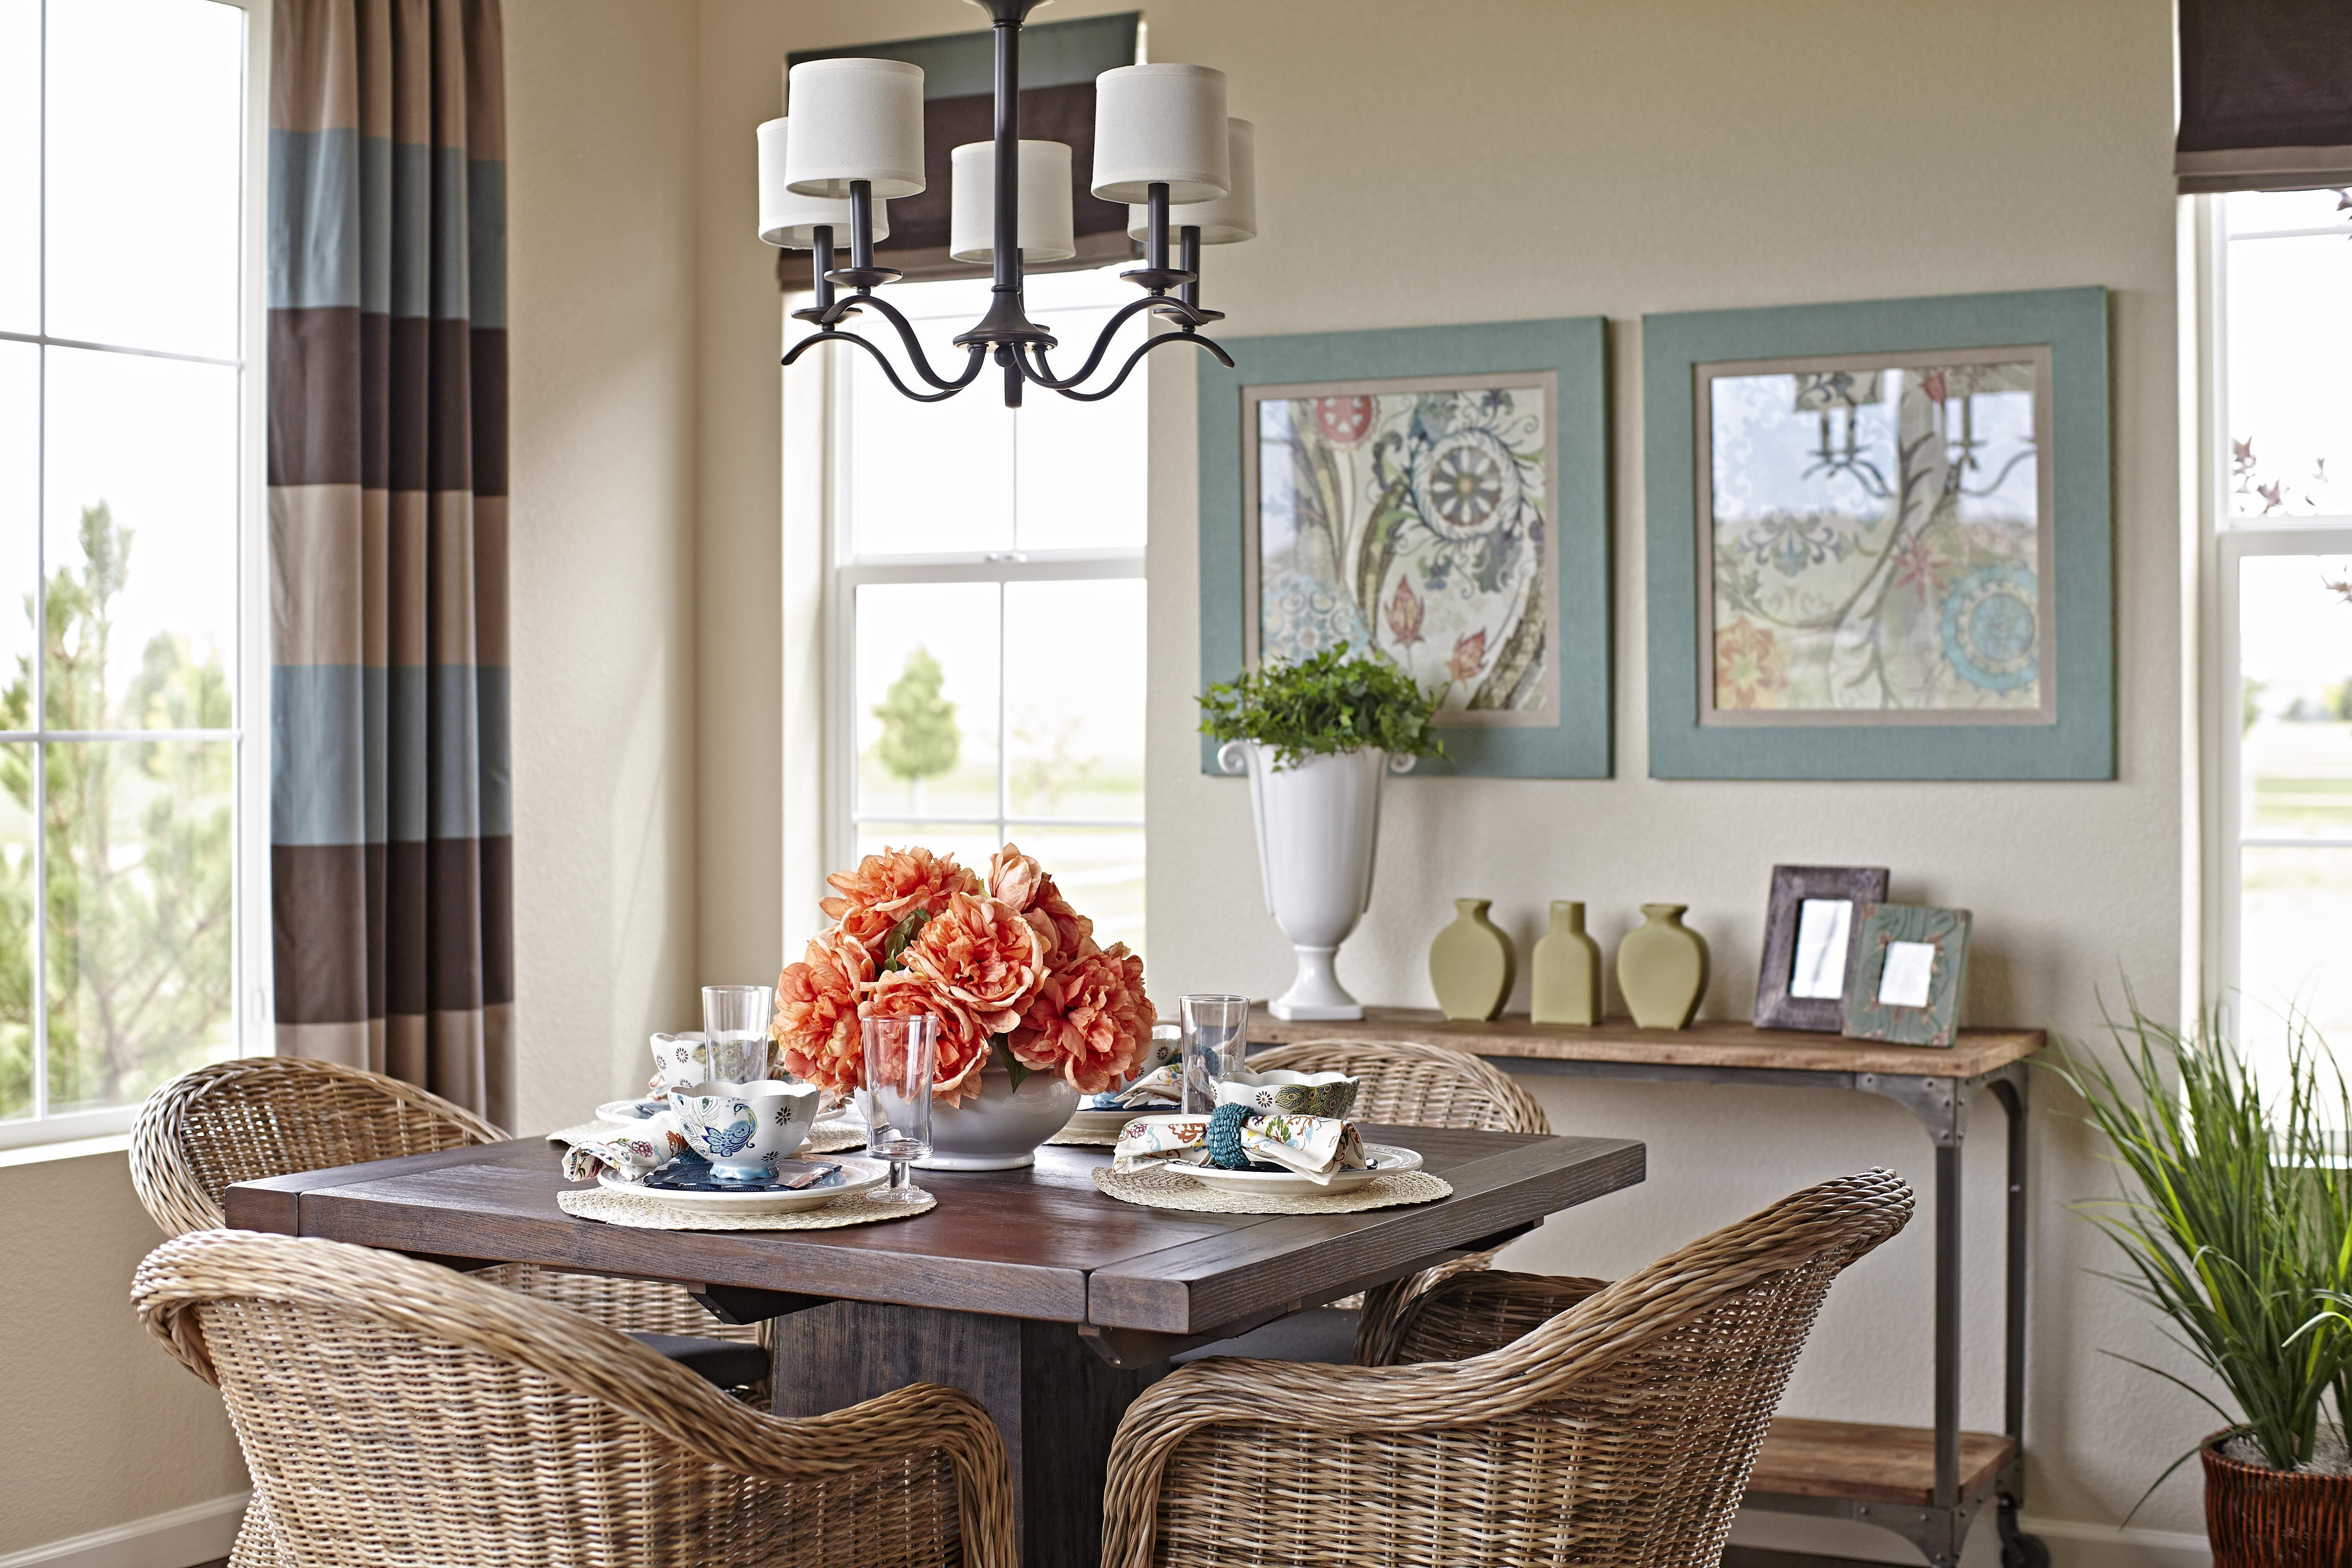 Finest Dining Room Images  June, 2018